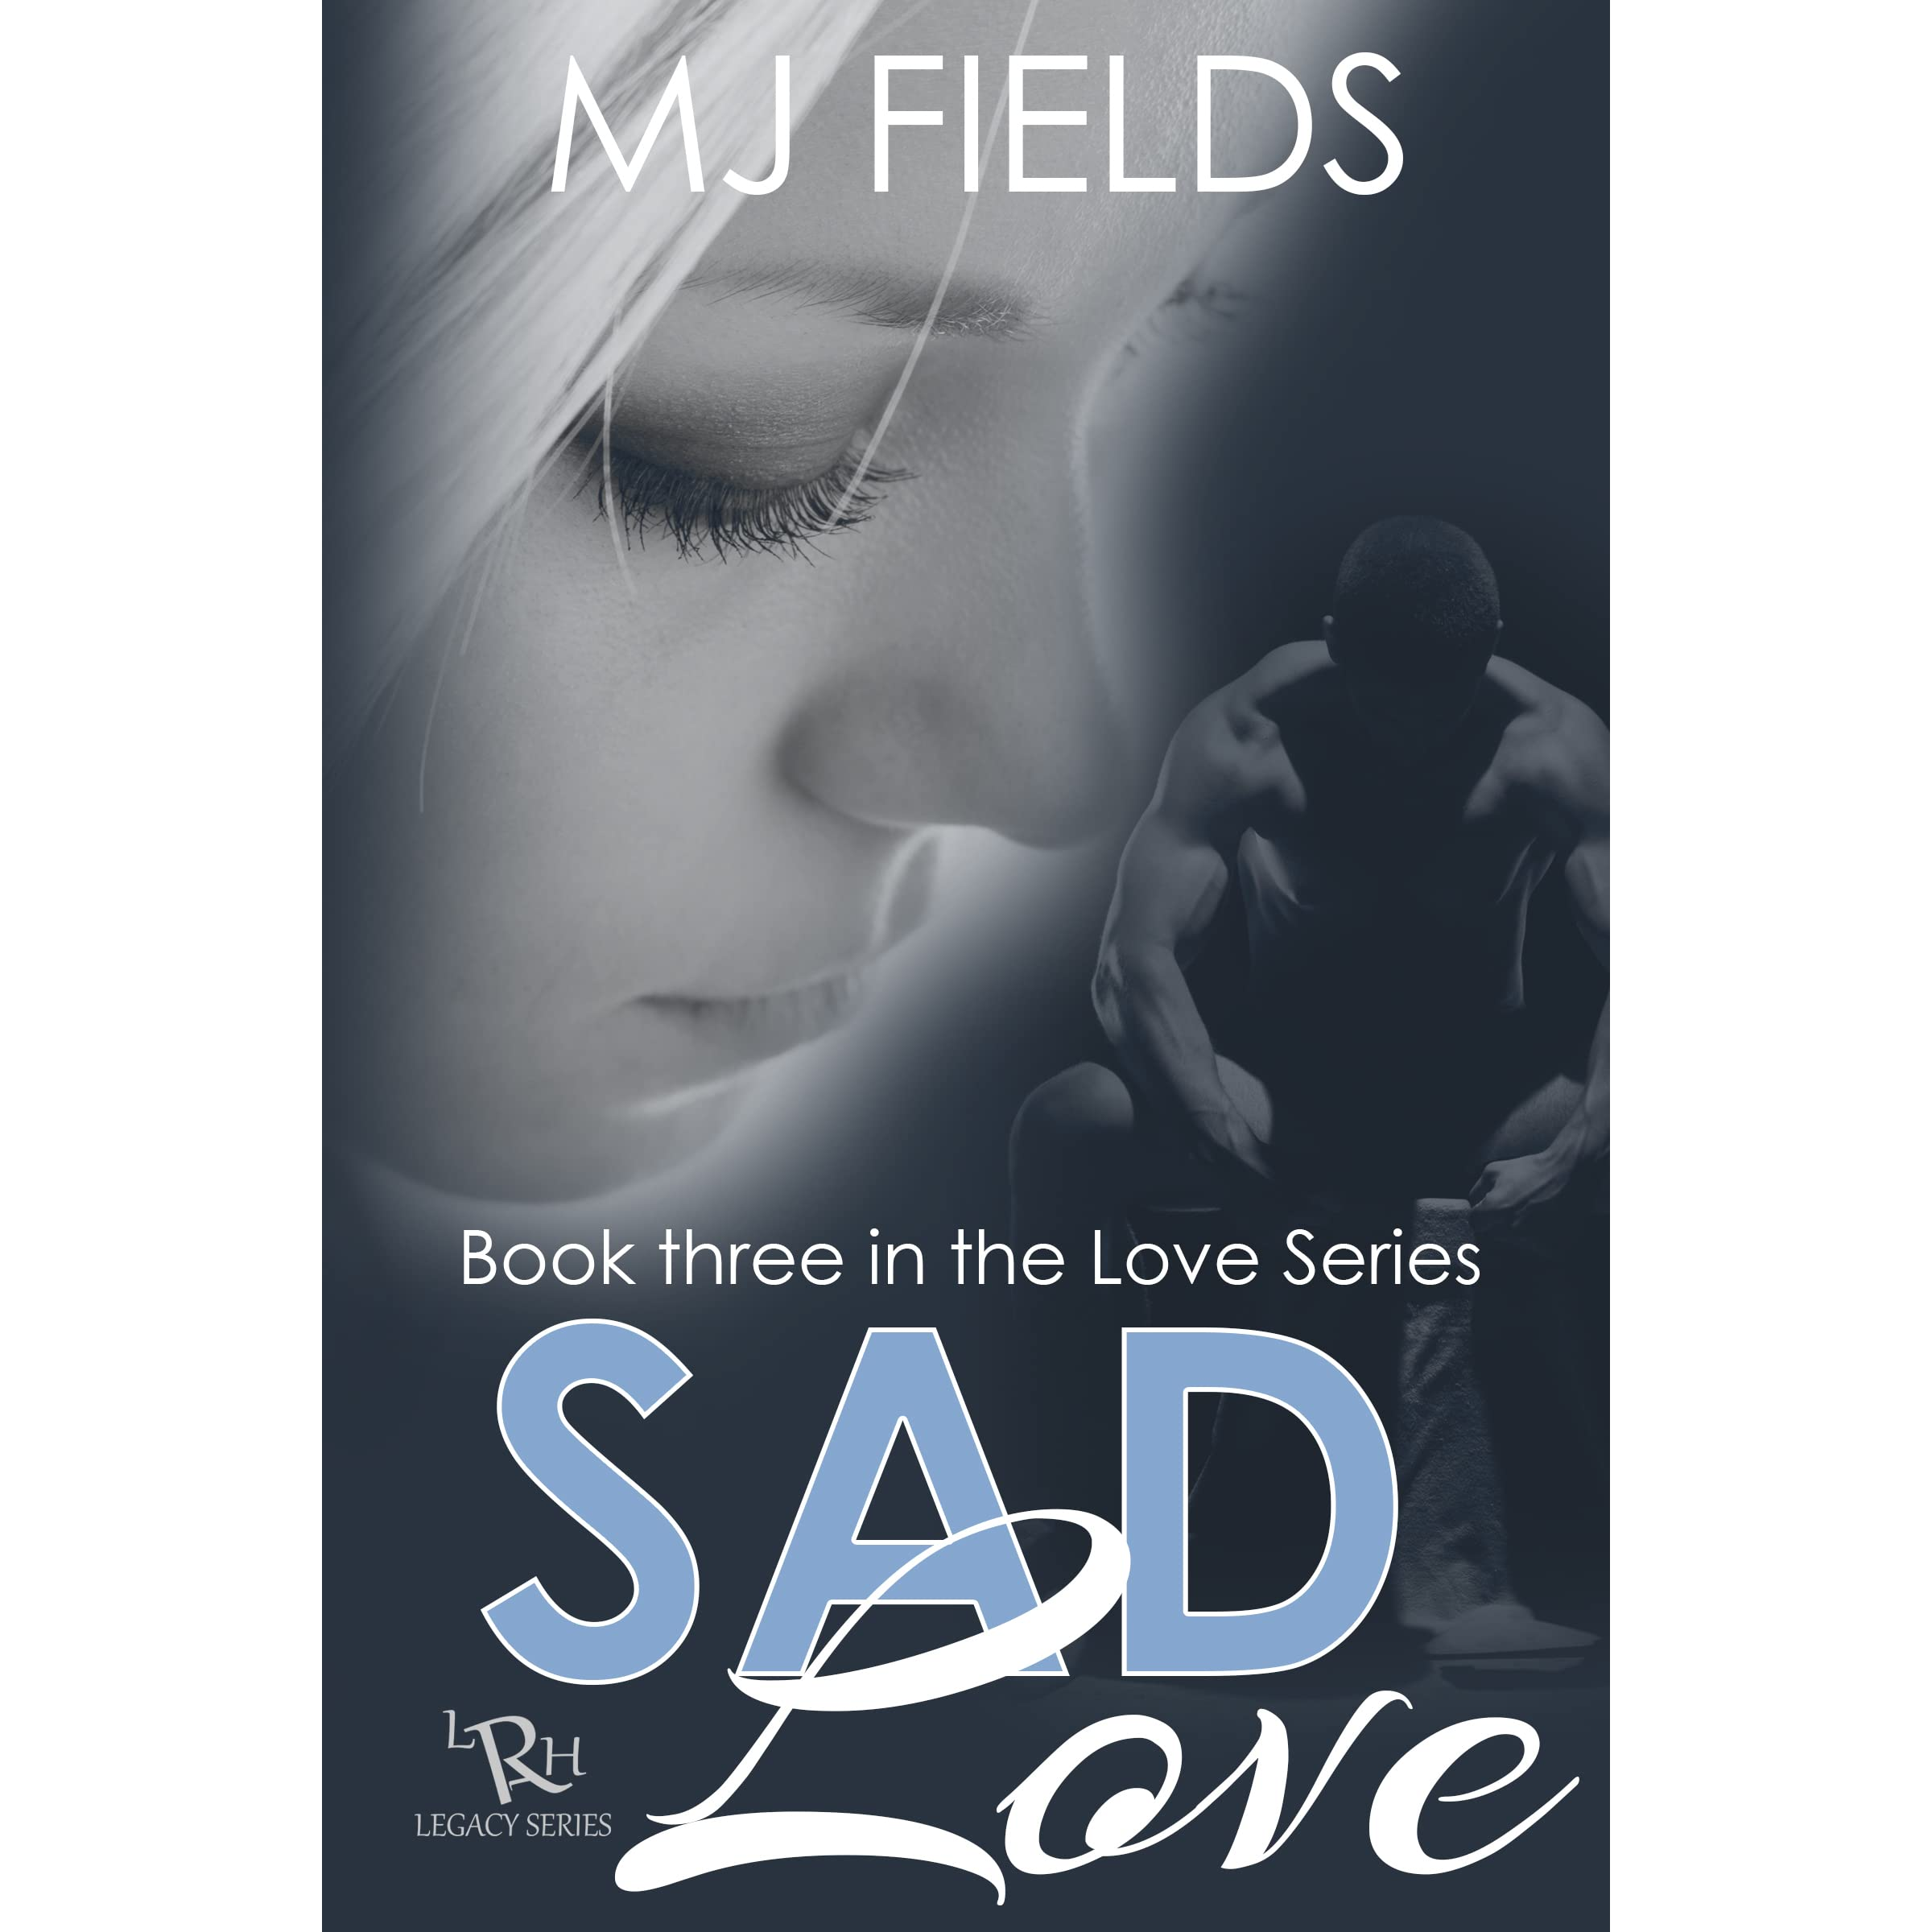 J Loved The Field On The Wall Look ȁ�: Sad Love (Love #3) By M.J. Fields